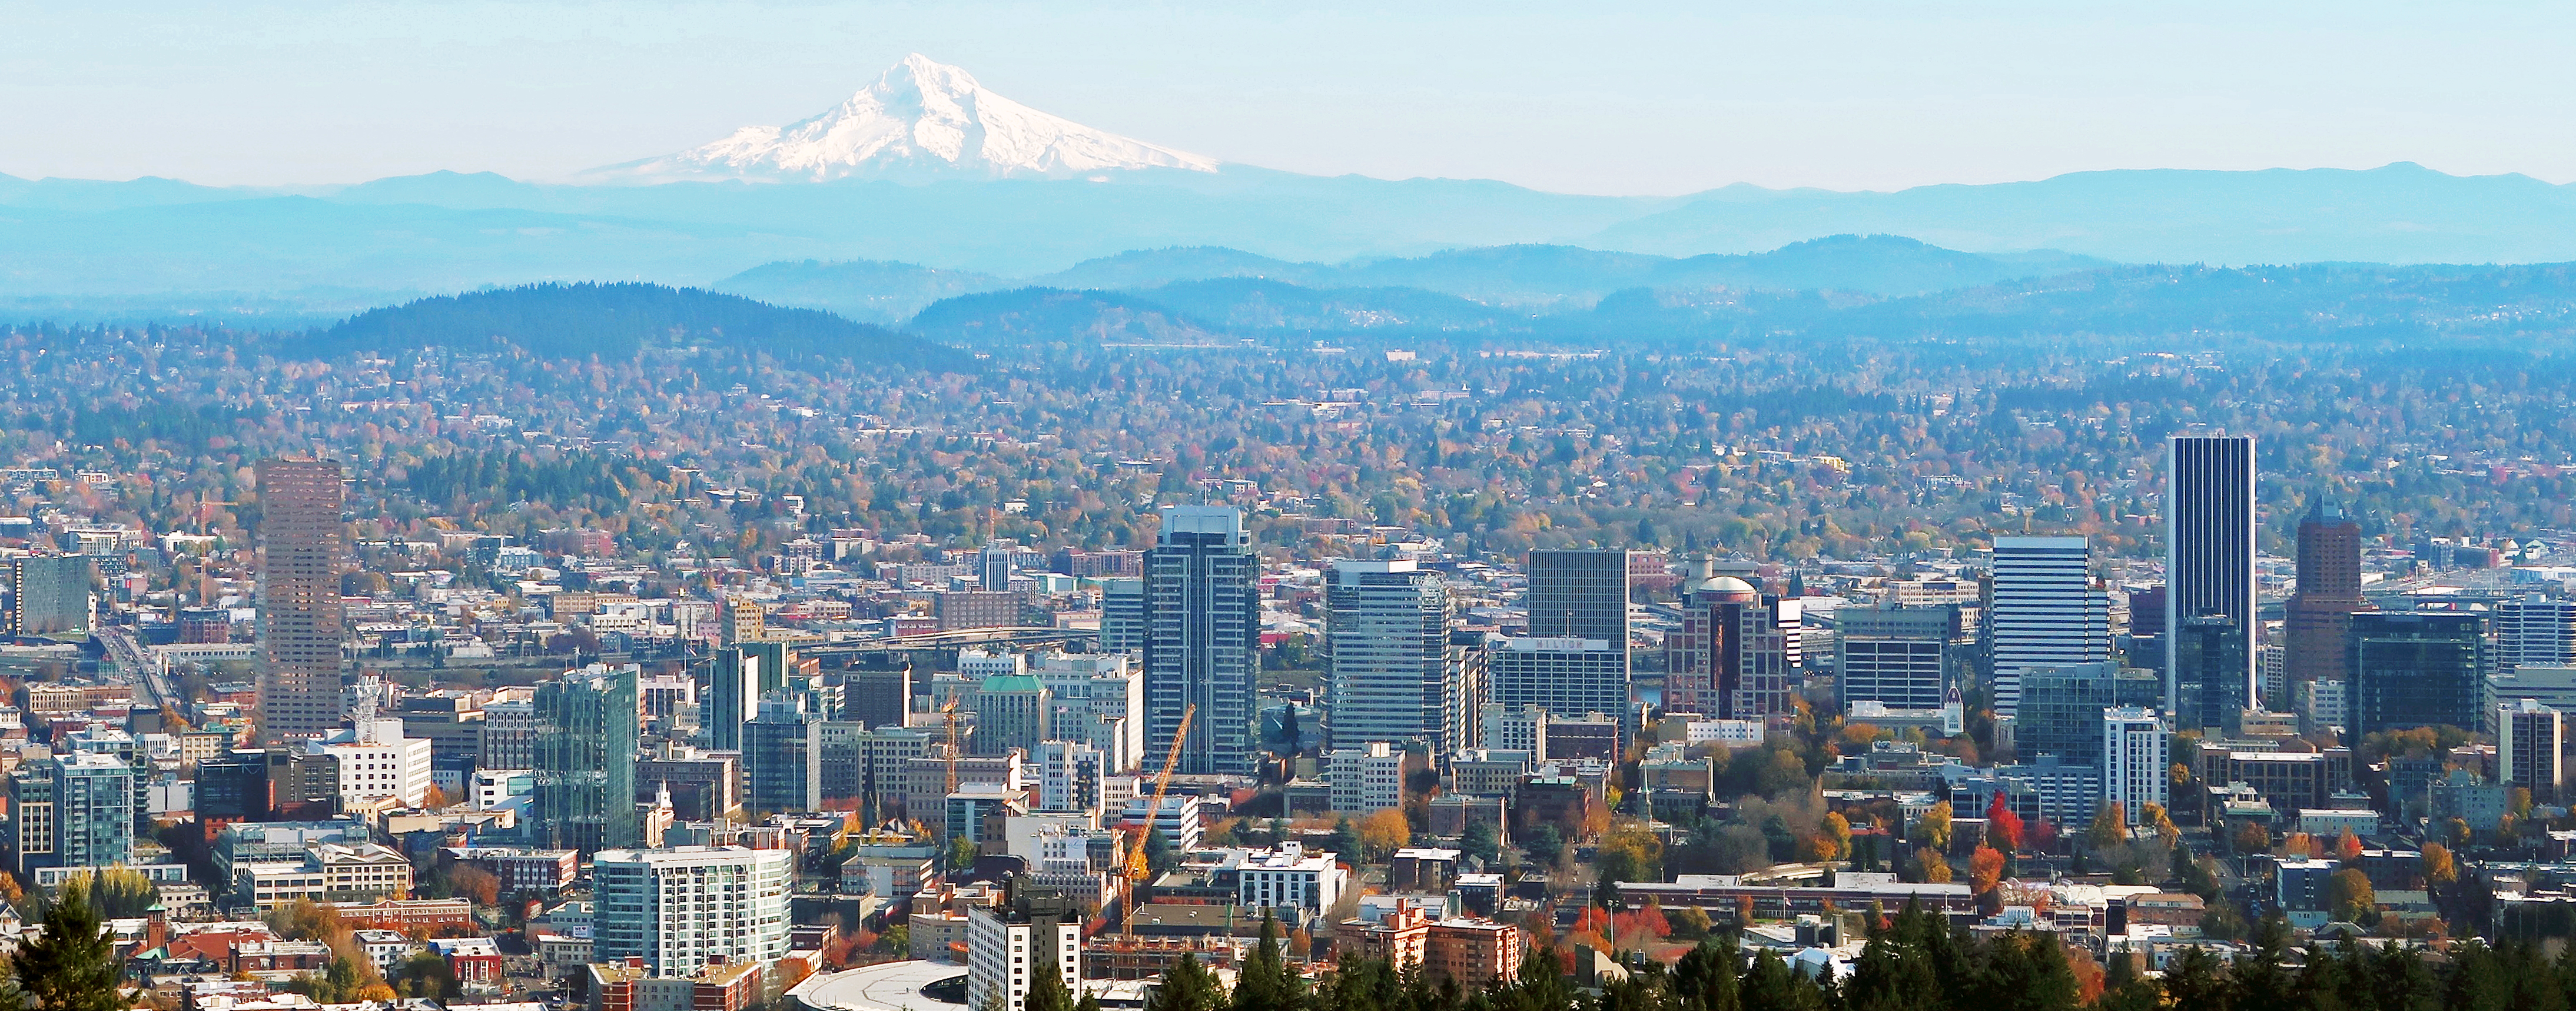 File:Portland and Mt. Hood from Pittock Mansion.jpg - Wikimedia Commons